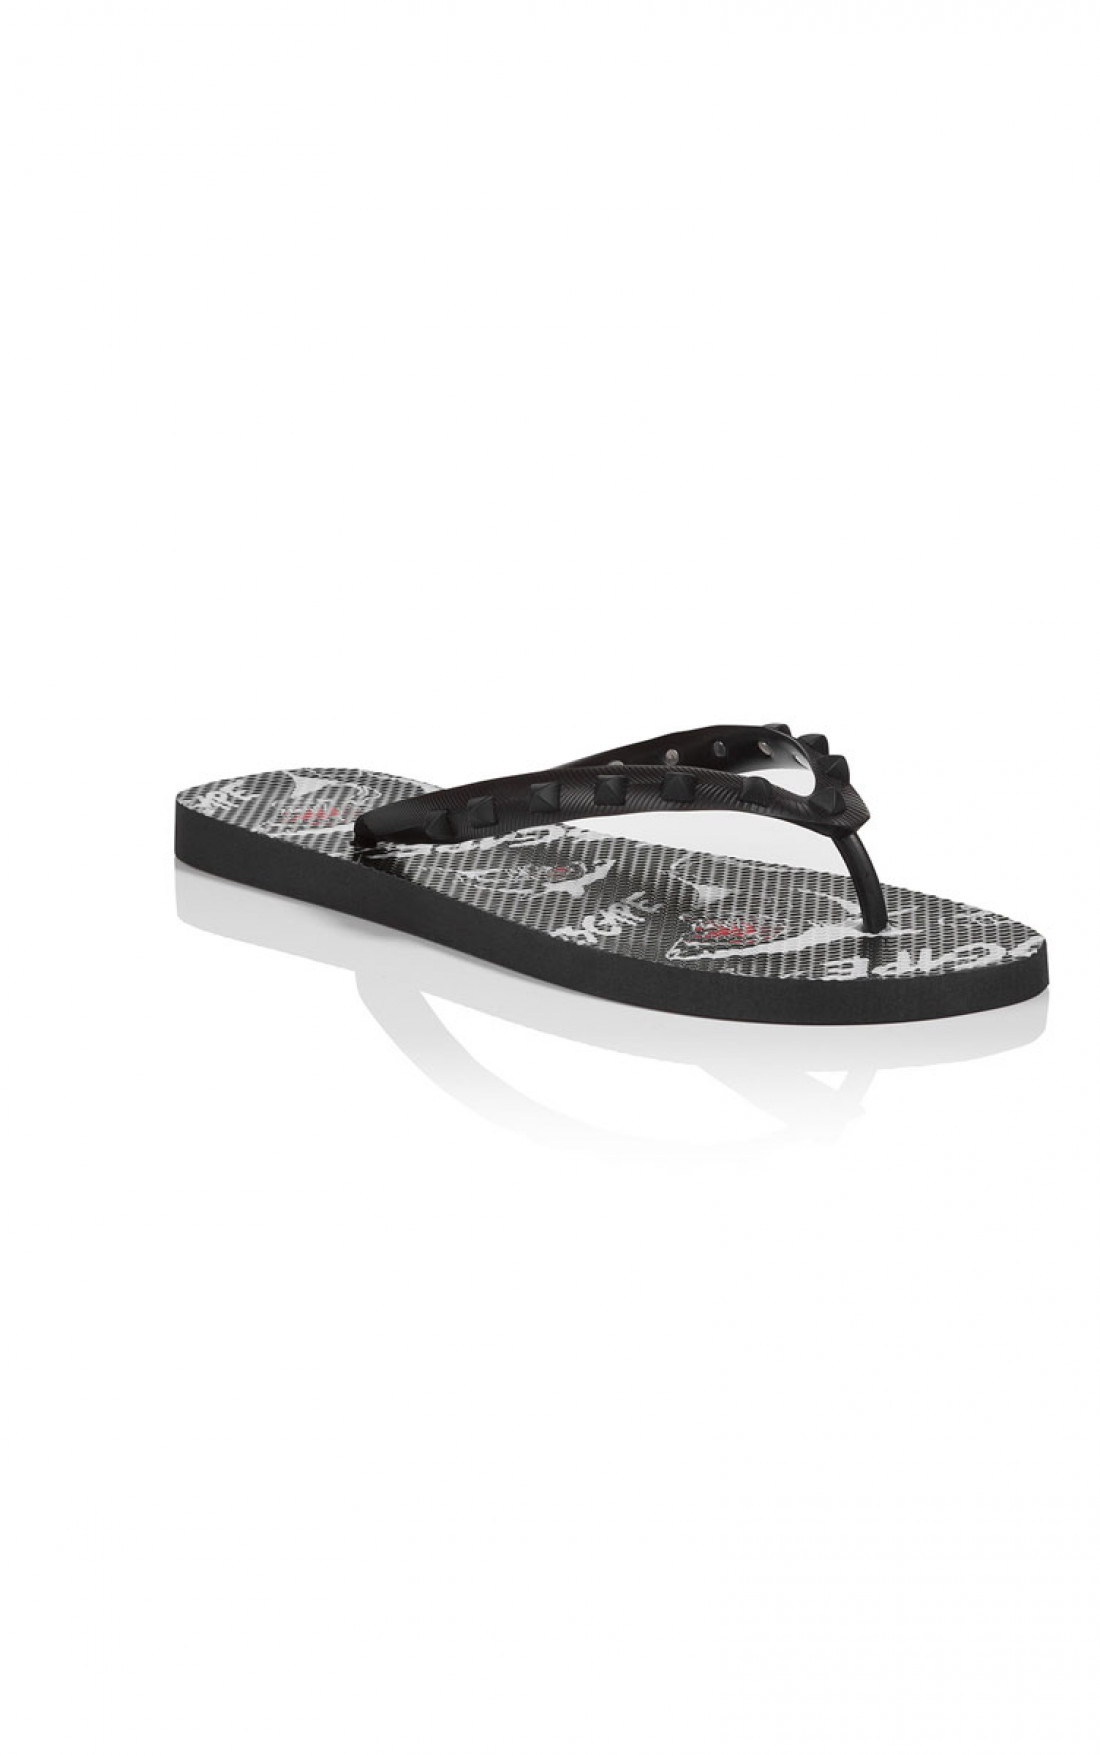 ll over printed flip flop Philipp Plein